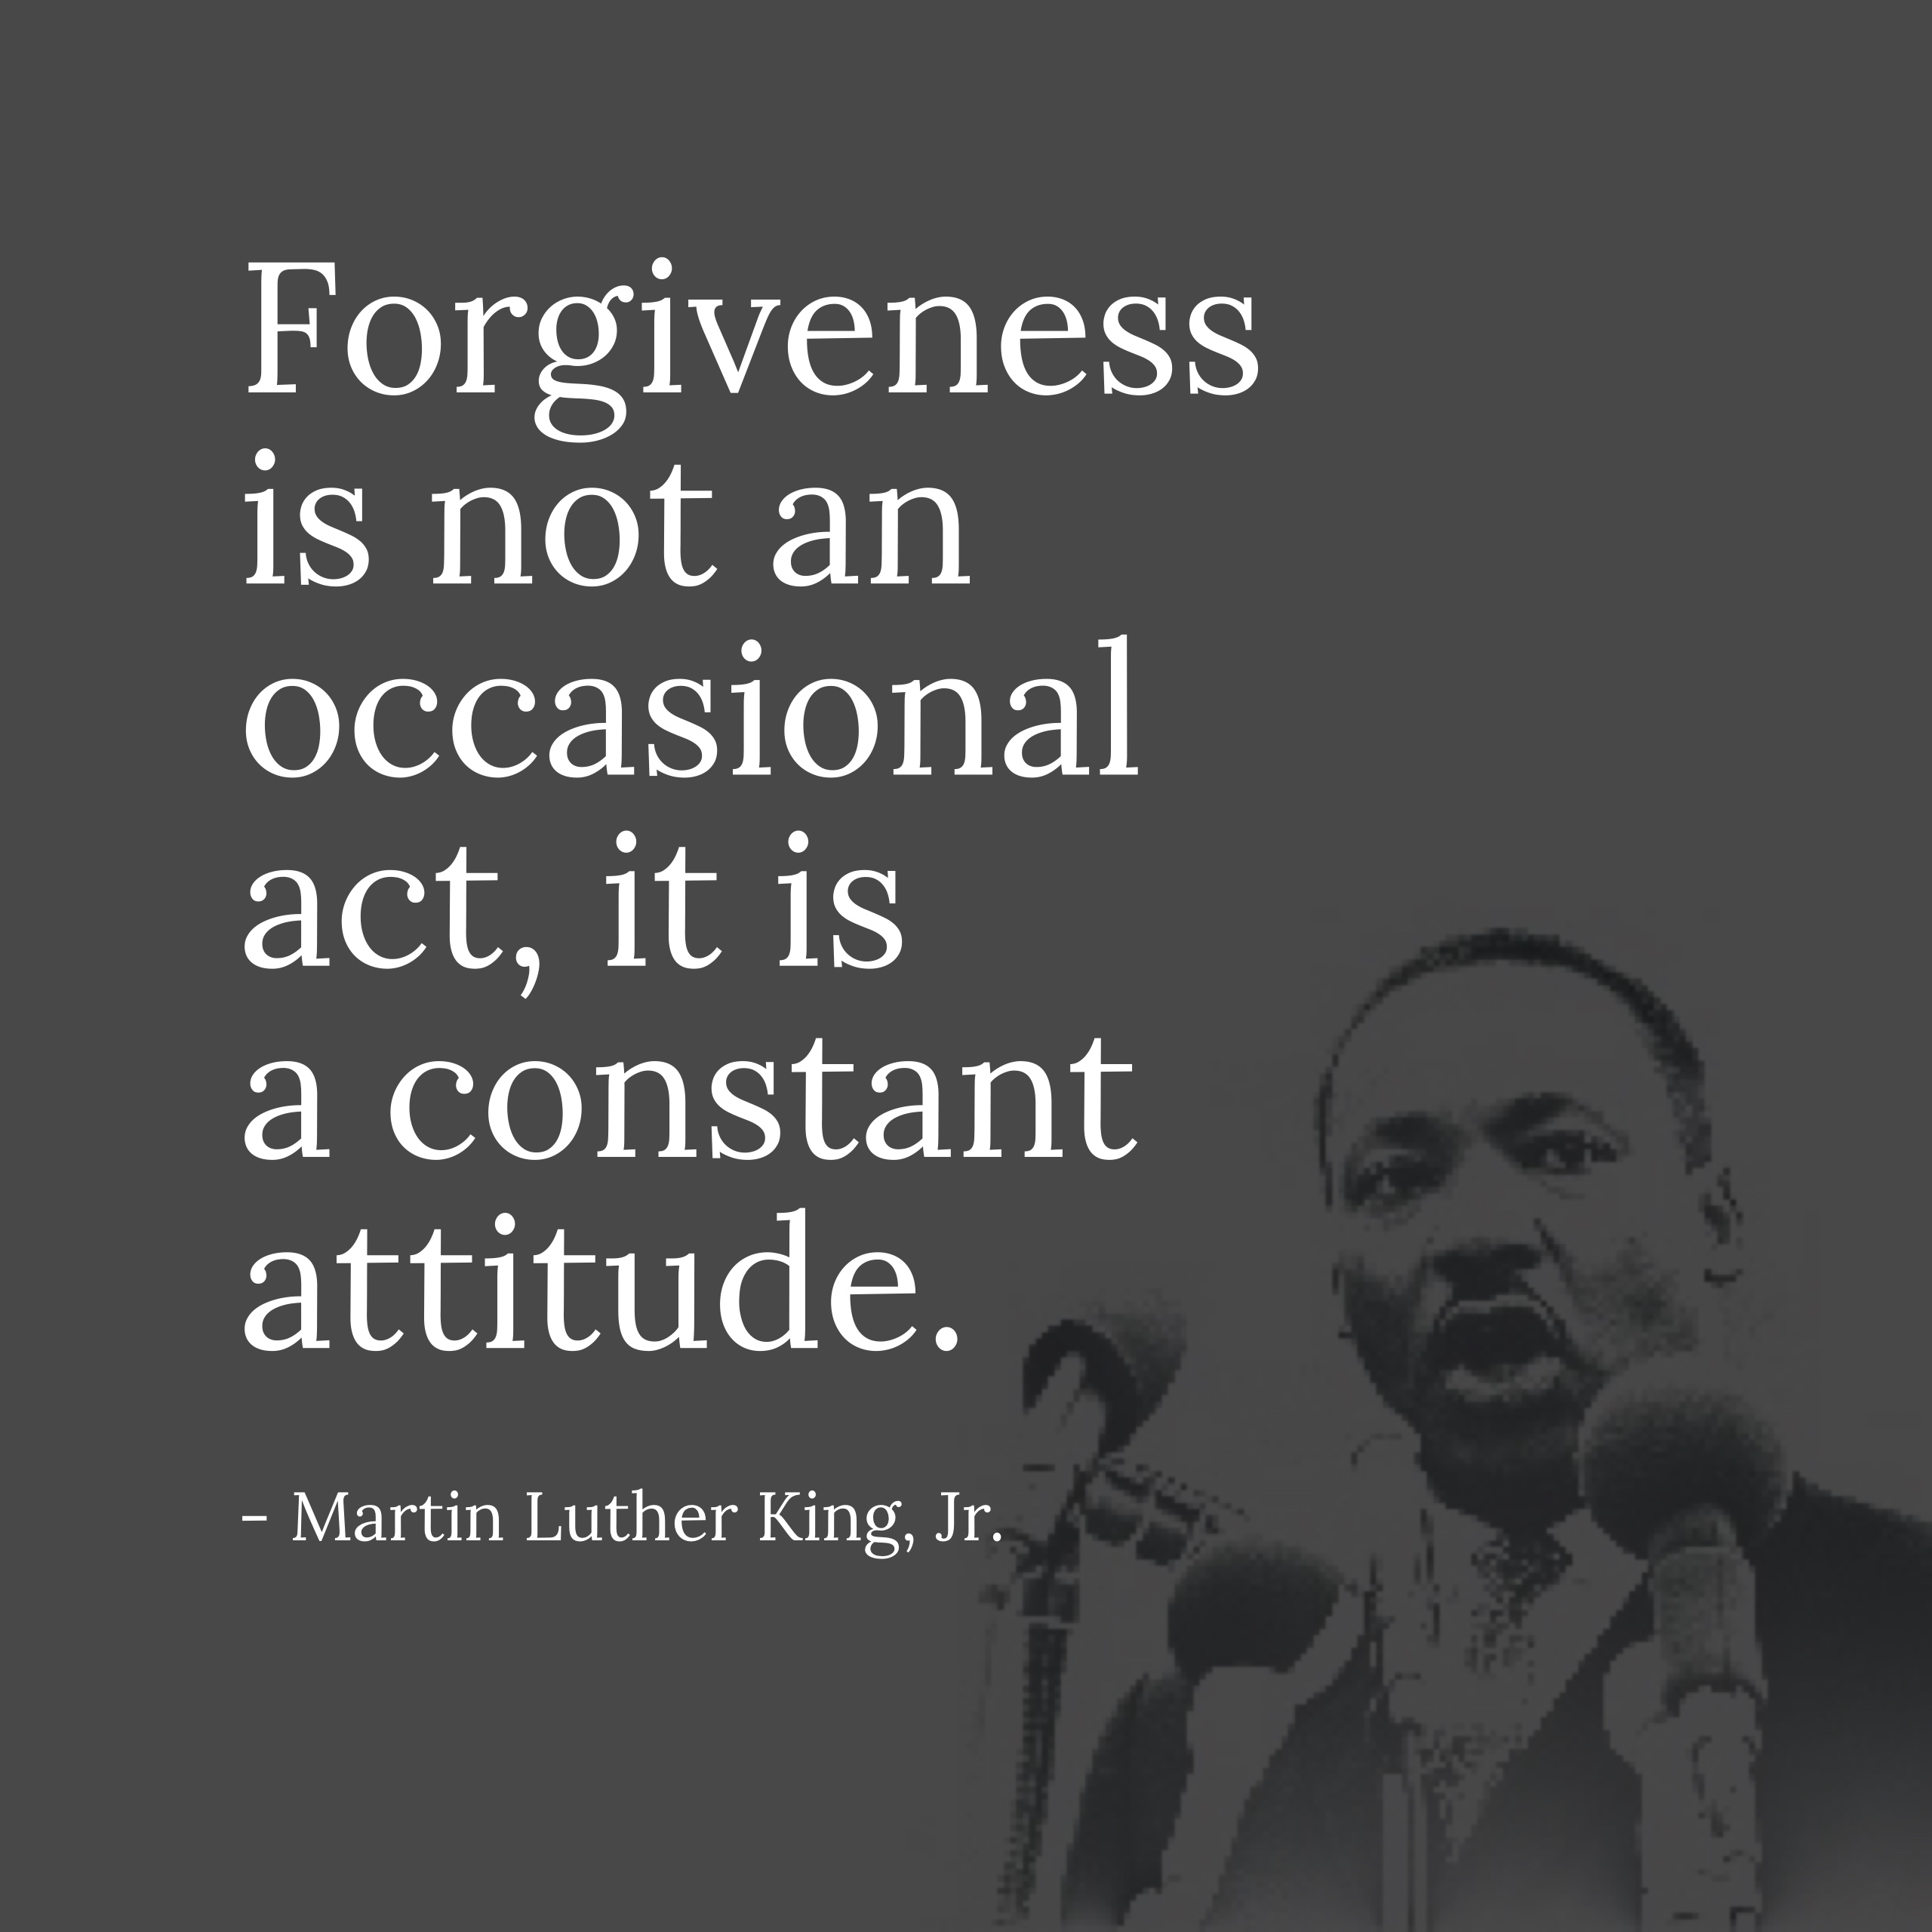 Images Of Martin Luther King Quotes | Forgiveness A Lesson From Martin Luther King Jr